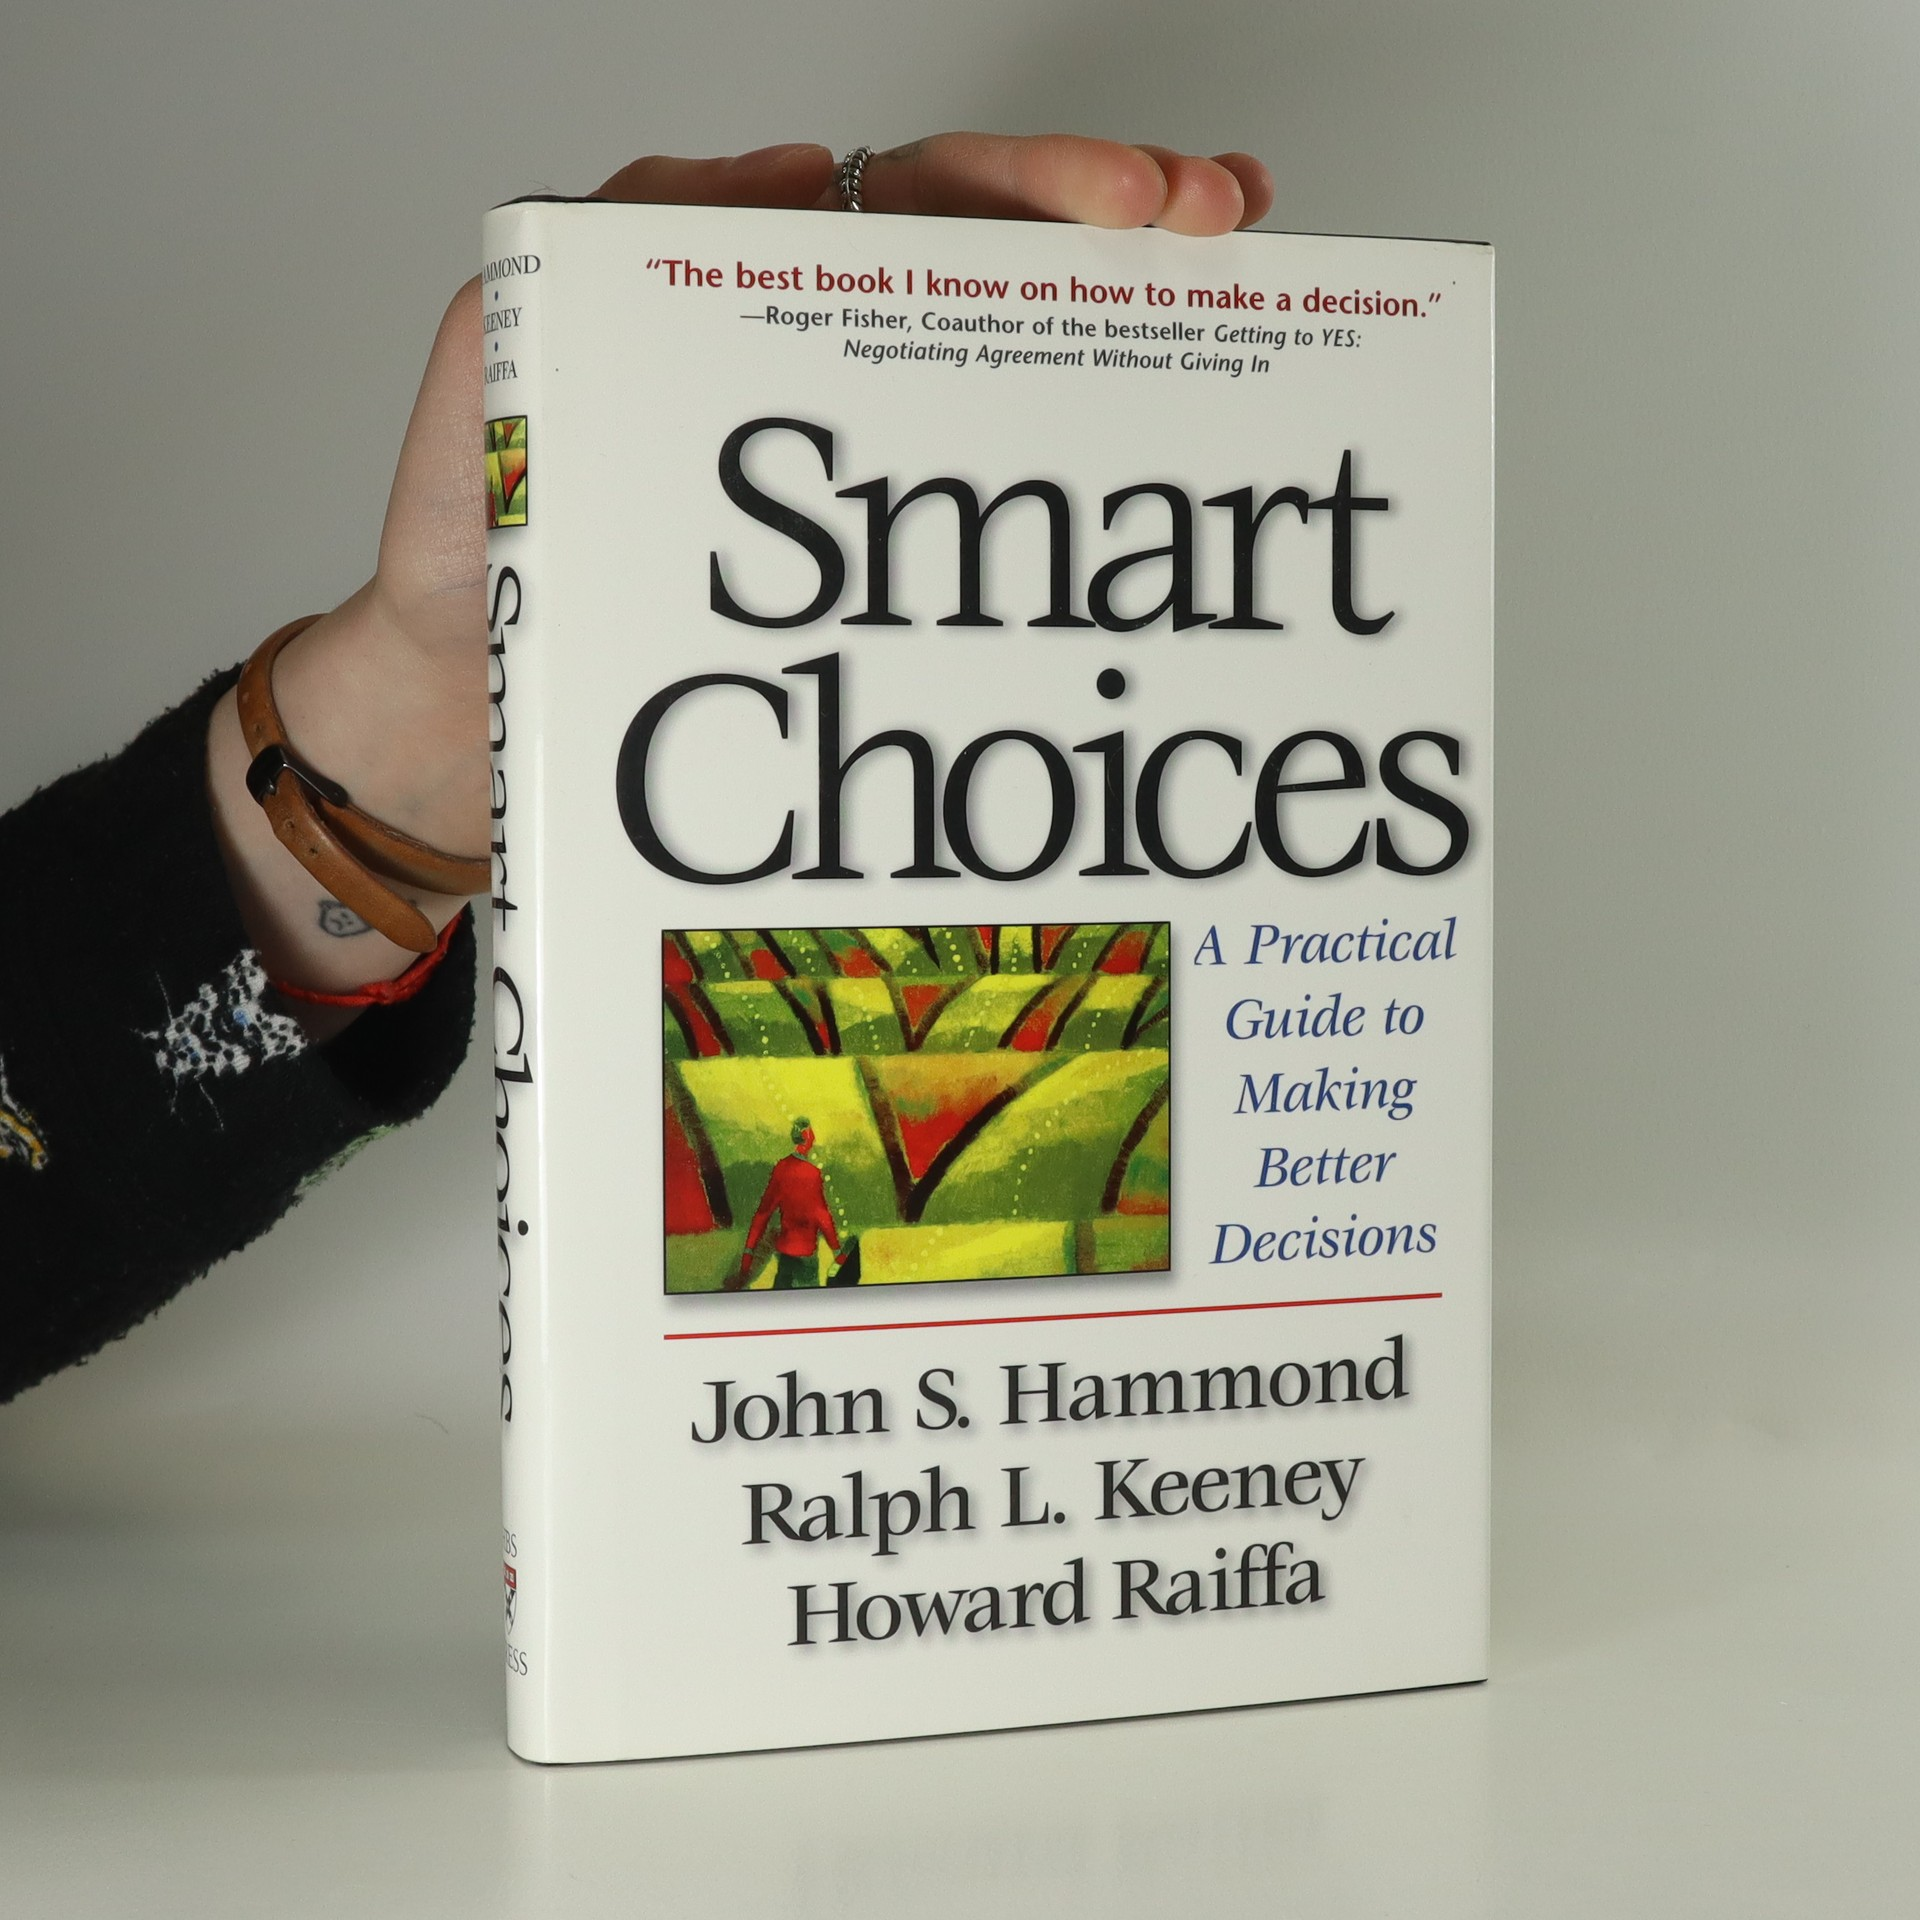 antikvární kniha Smart Choices. A Practical Guide to Making Better Decisions, 1999